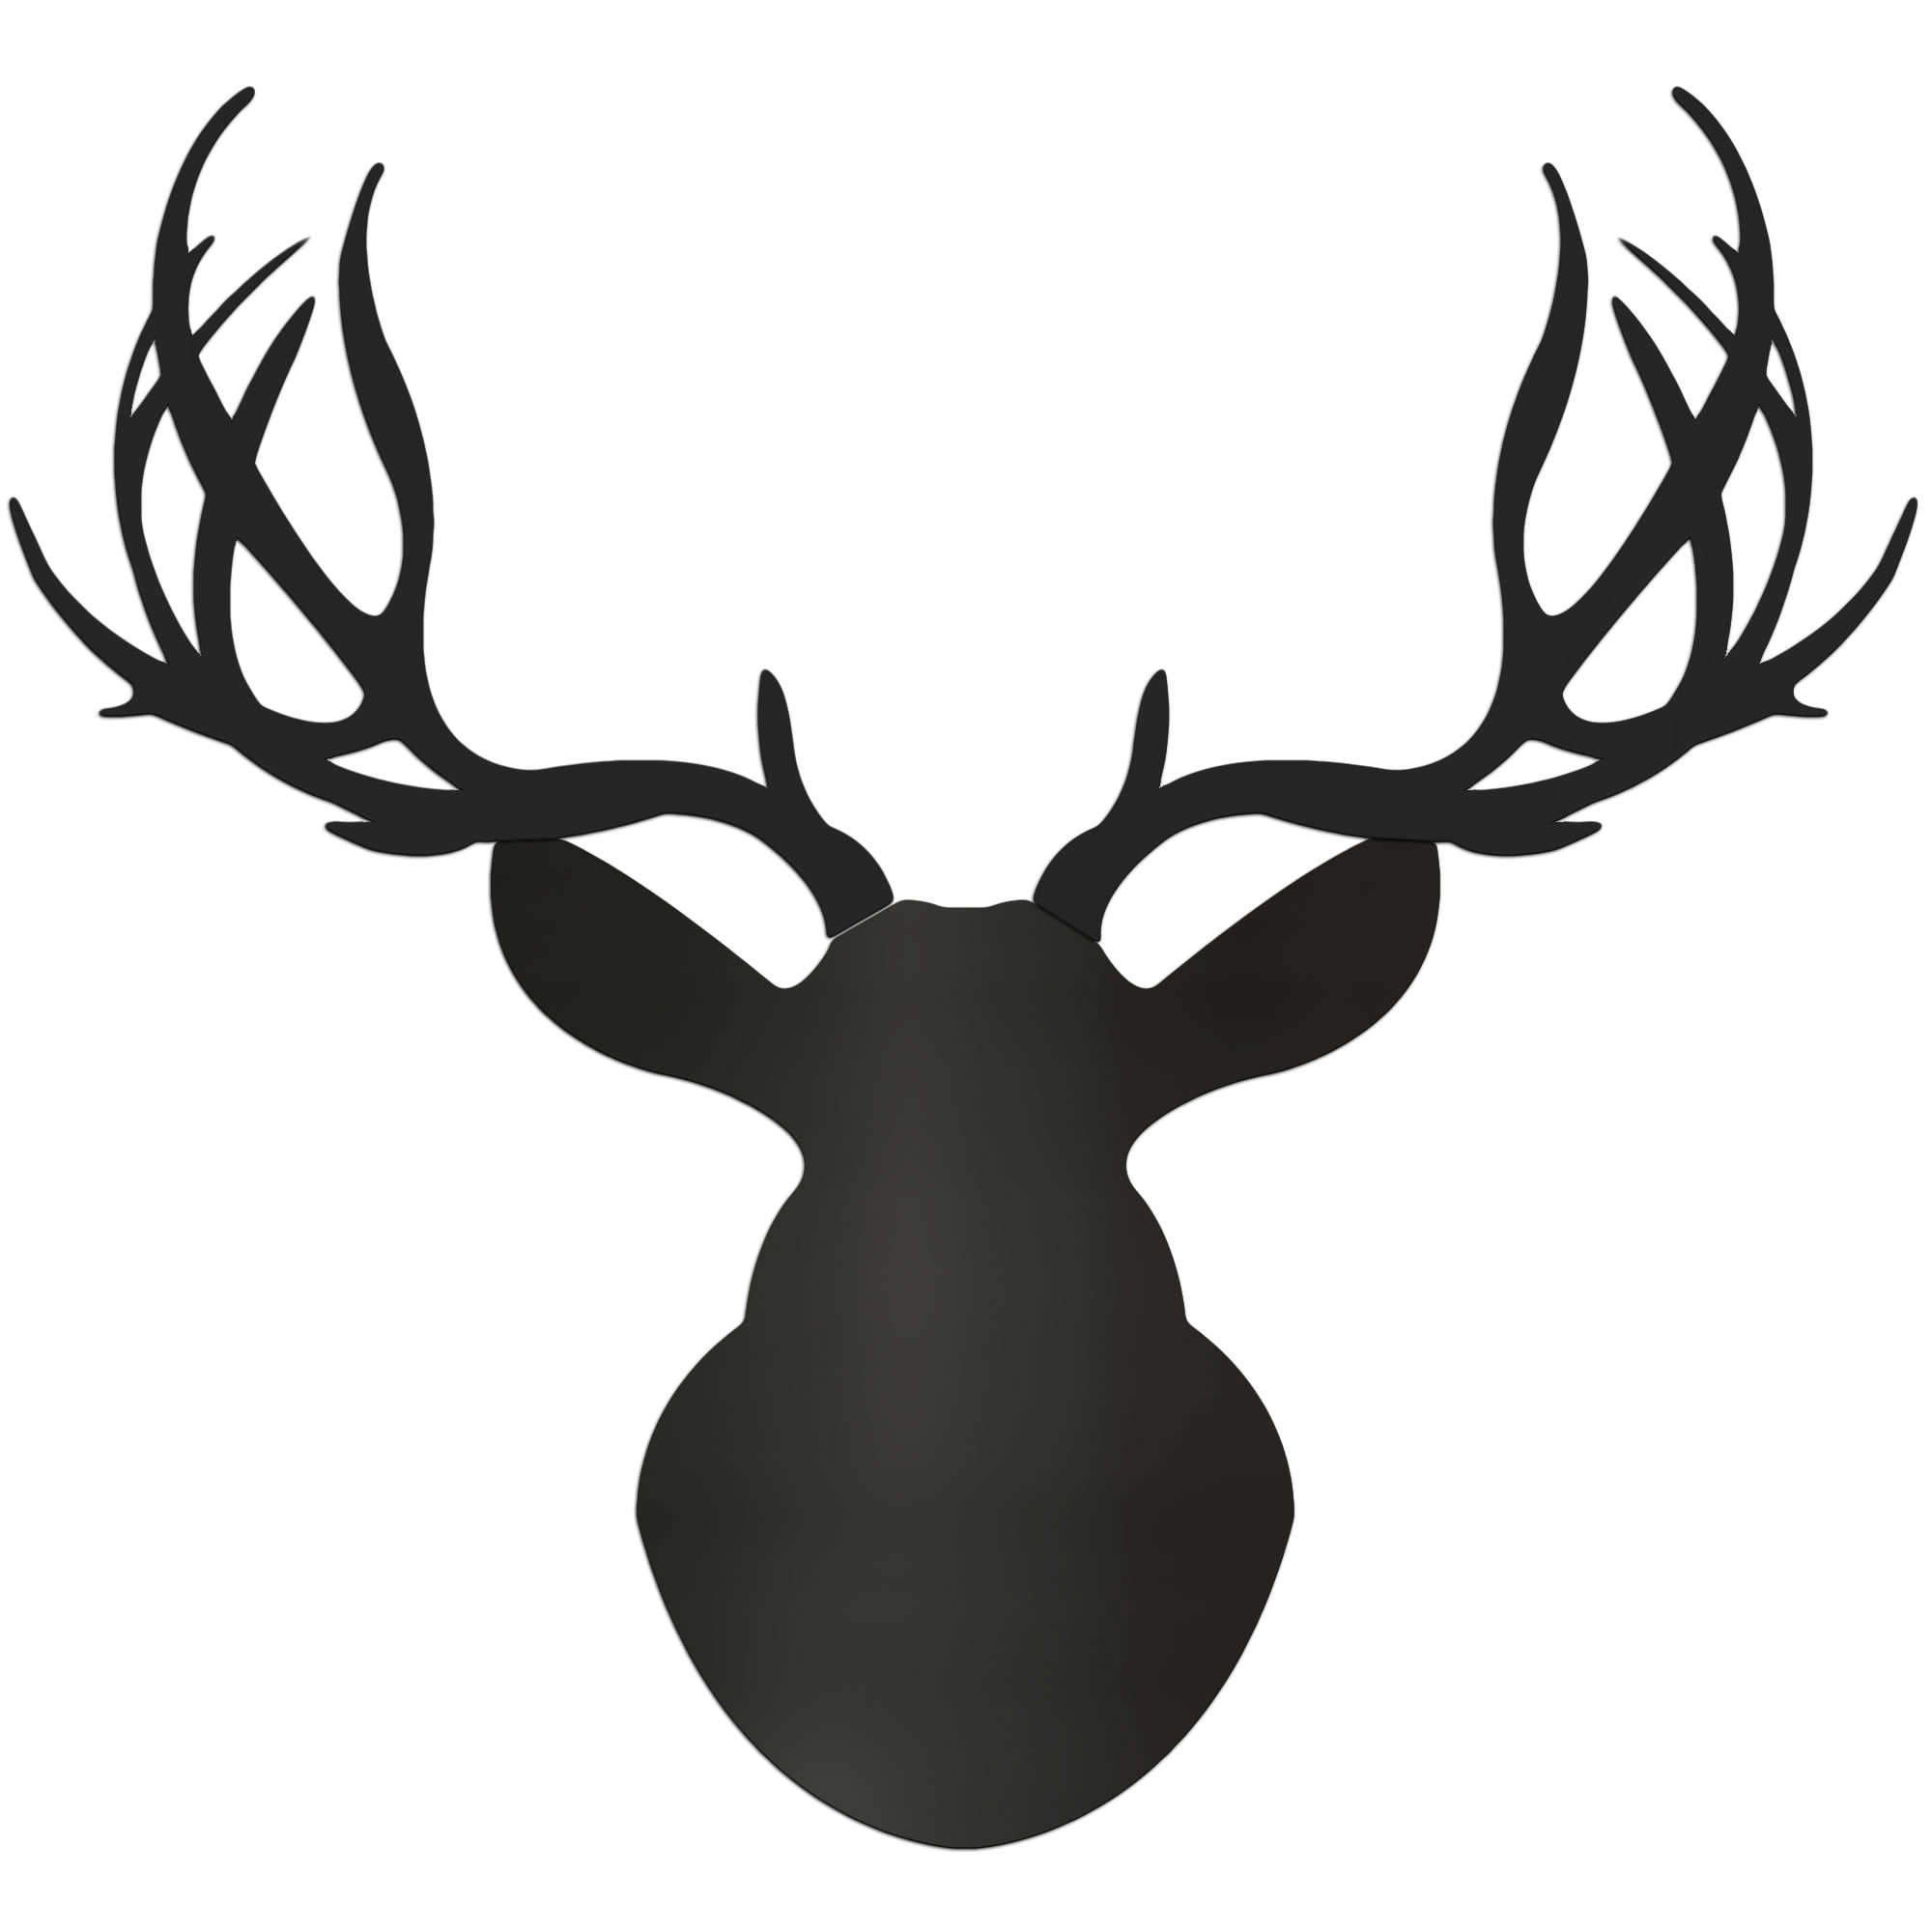 MIDNIGHT BUCK - 36x36 in. Pure Black Deer Cut-Out